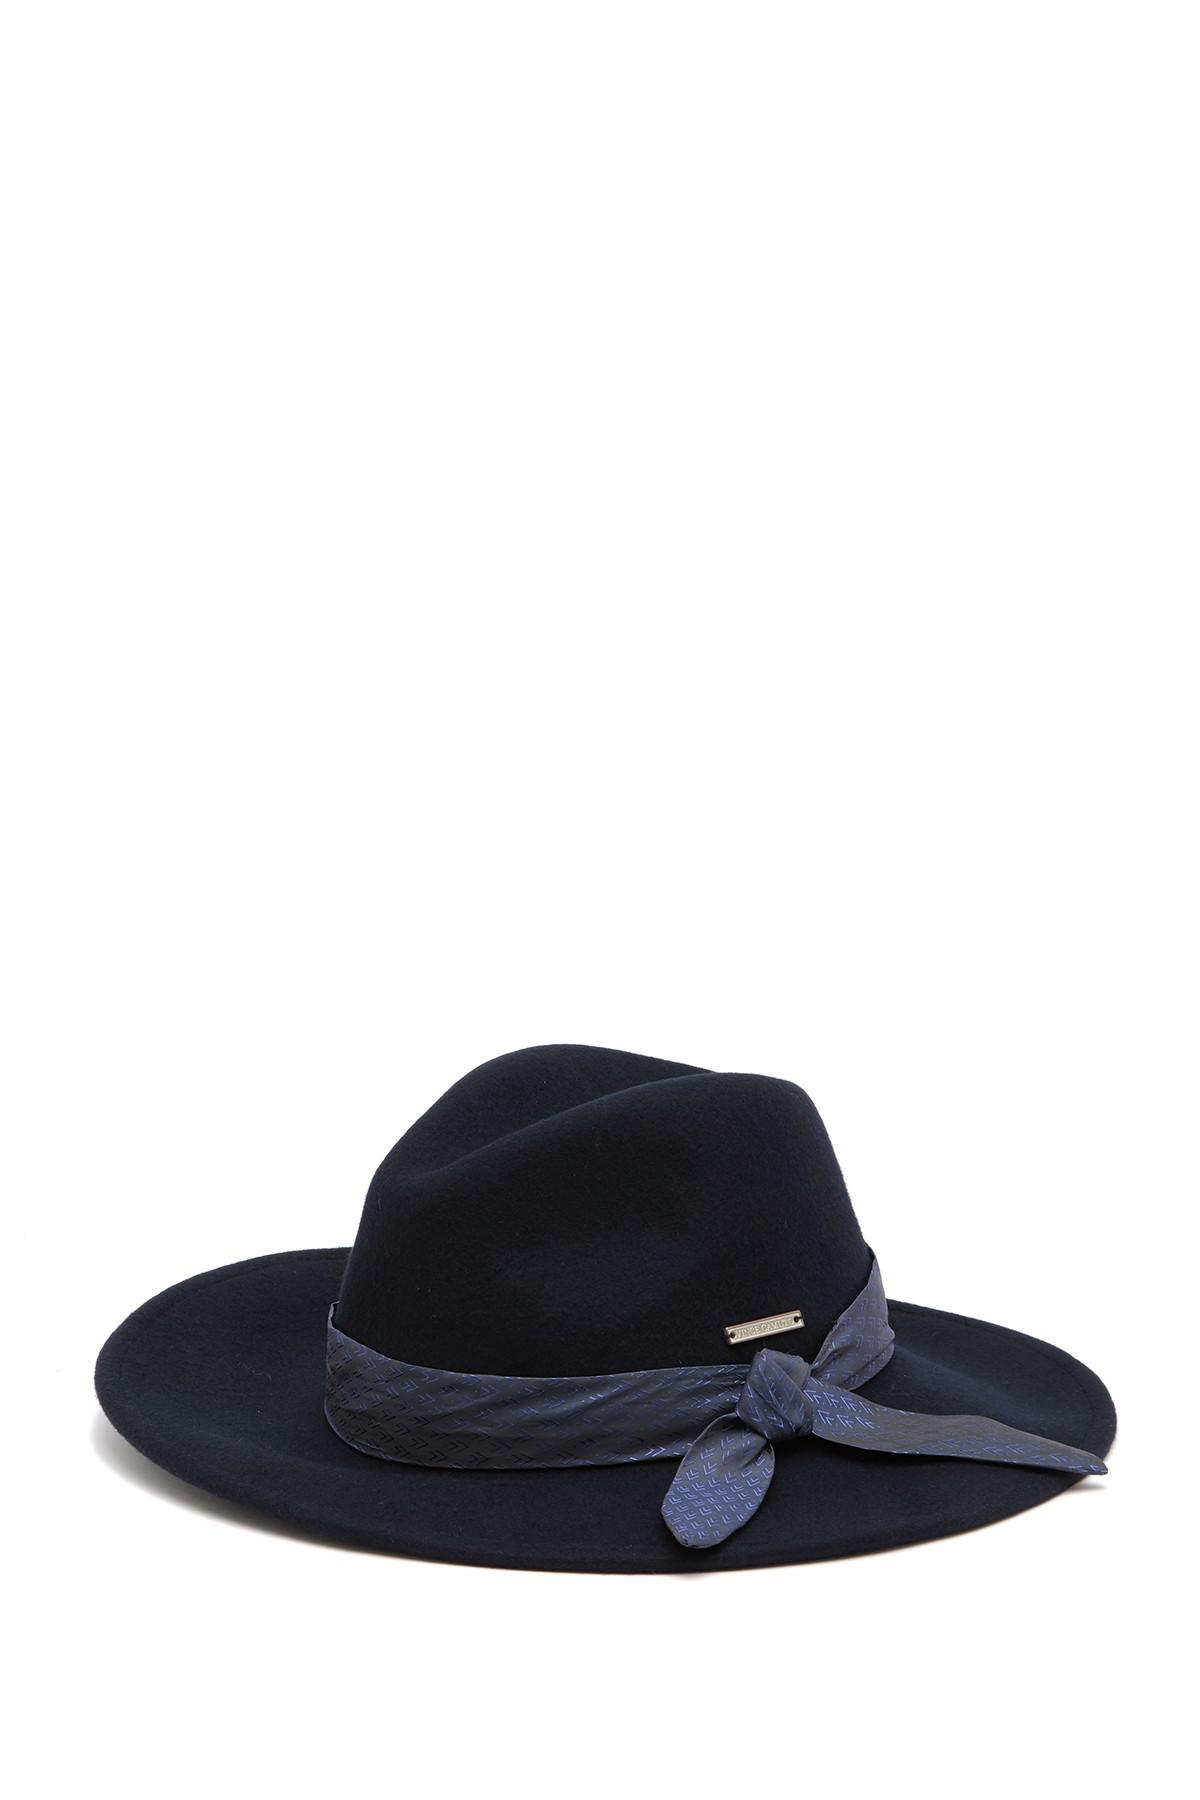 f3e4c83a424 Lyst - Vince Camuto Wool Tie Panama Hat in Blue